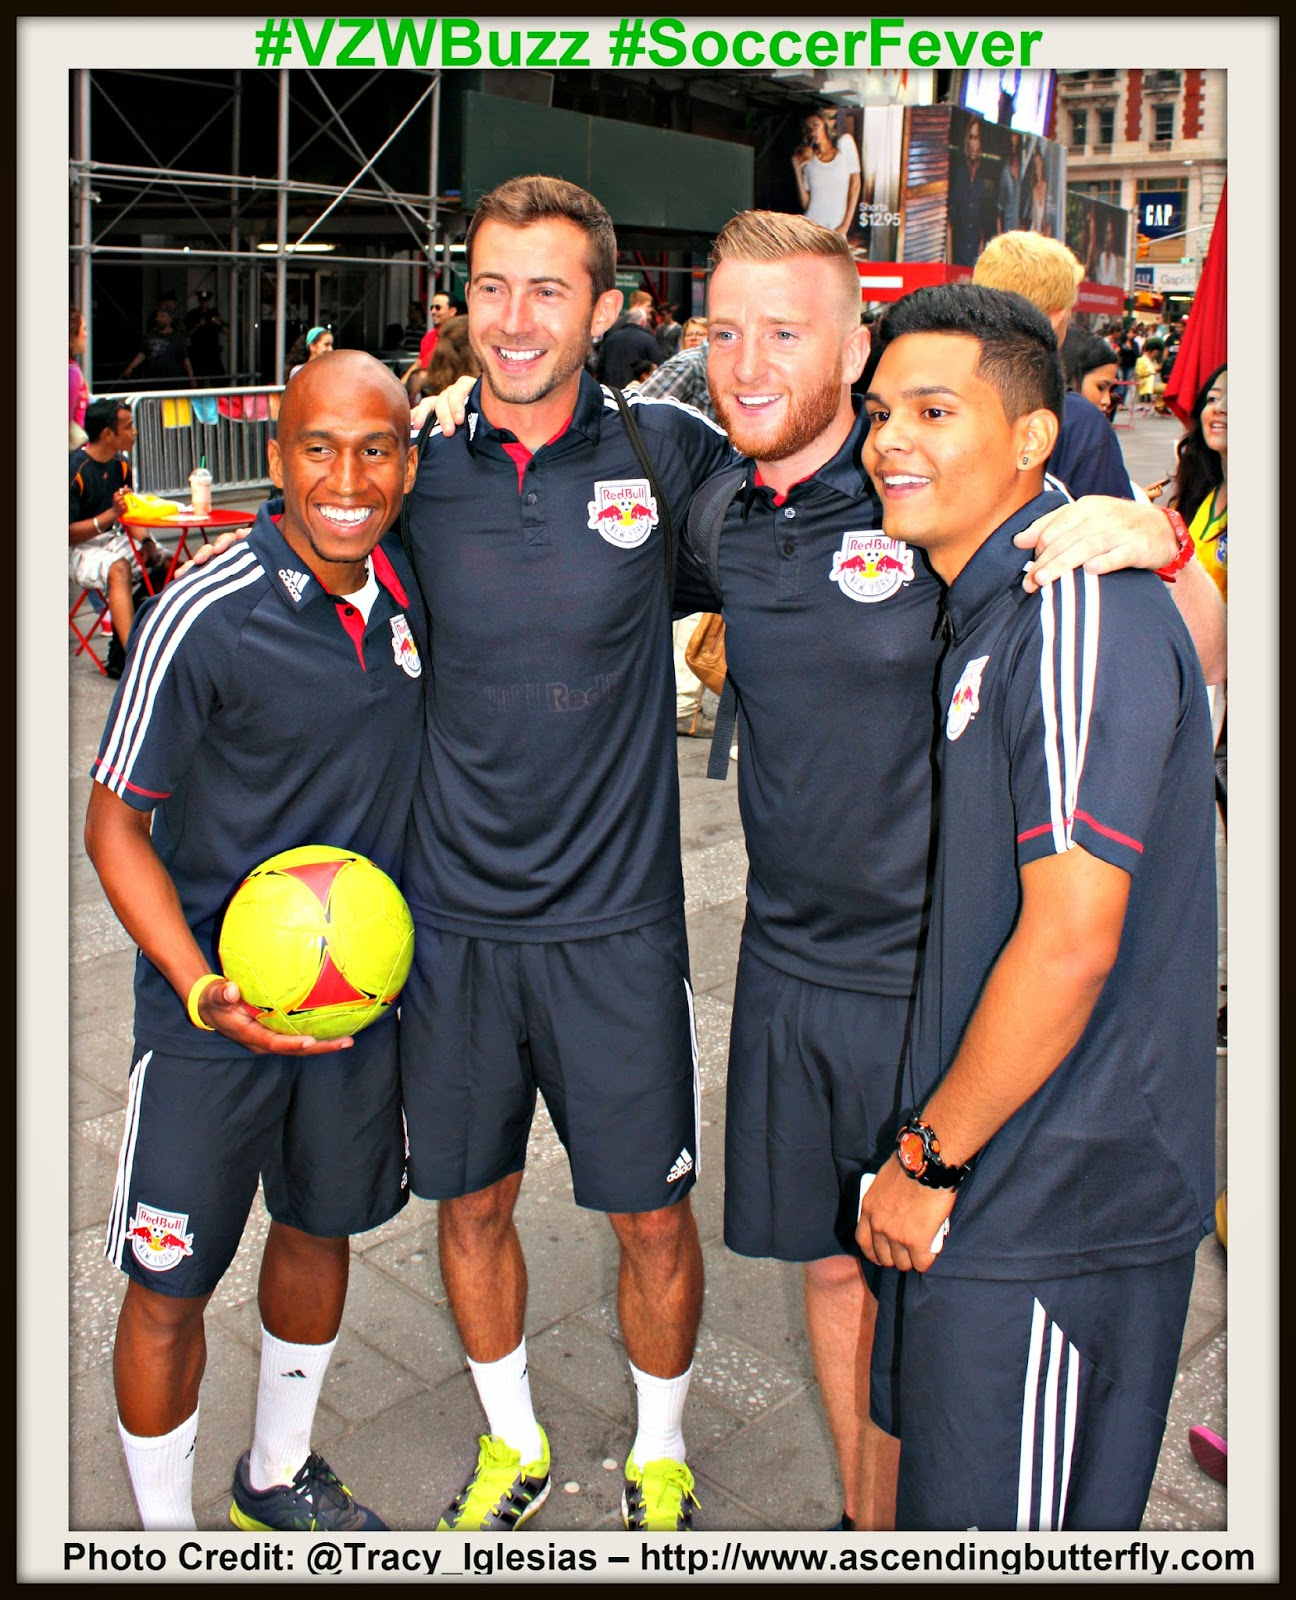 The New York Red Bulls and New York City Bloggers Times Square New York #VZWBuzz #SoccerFever